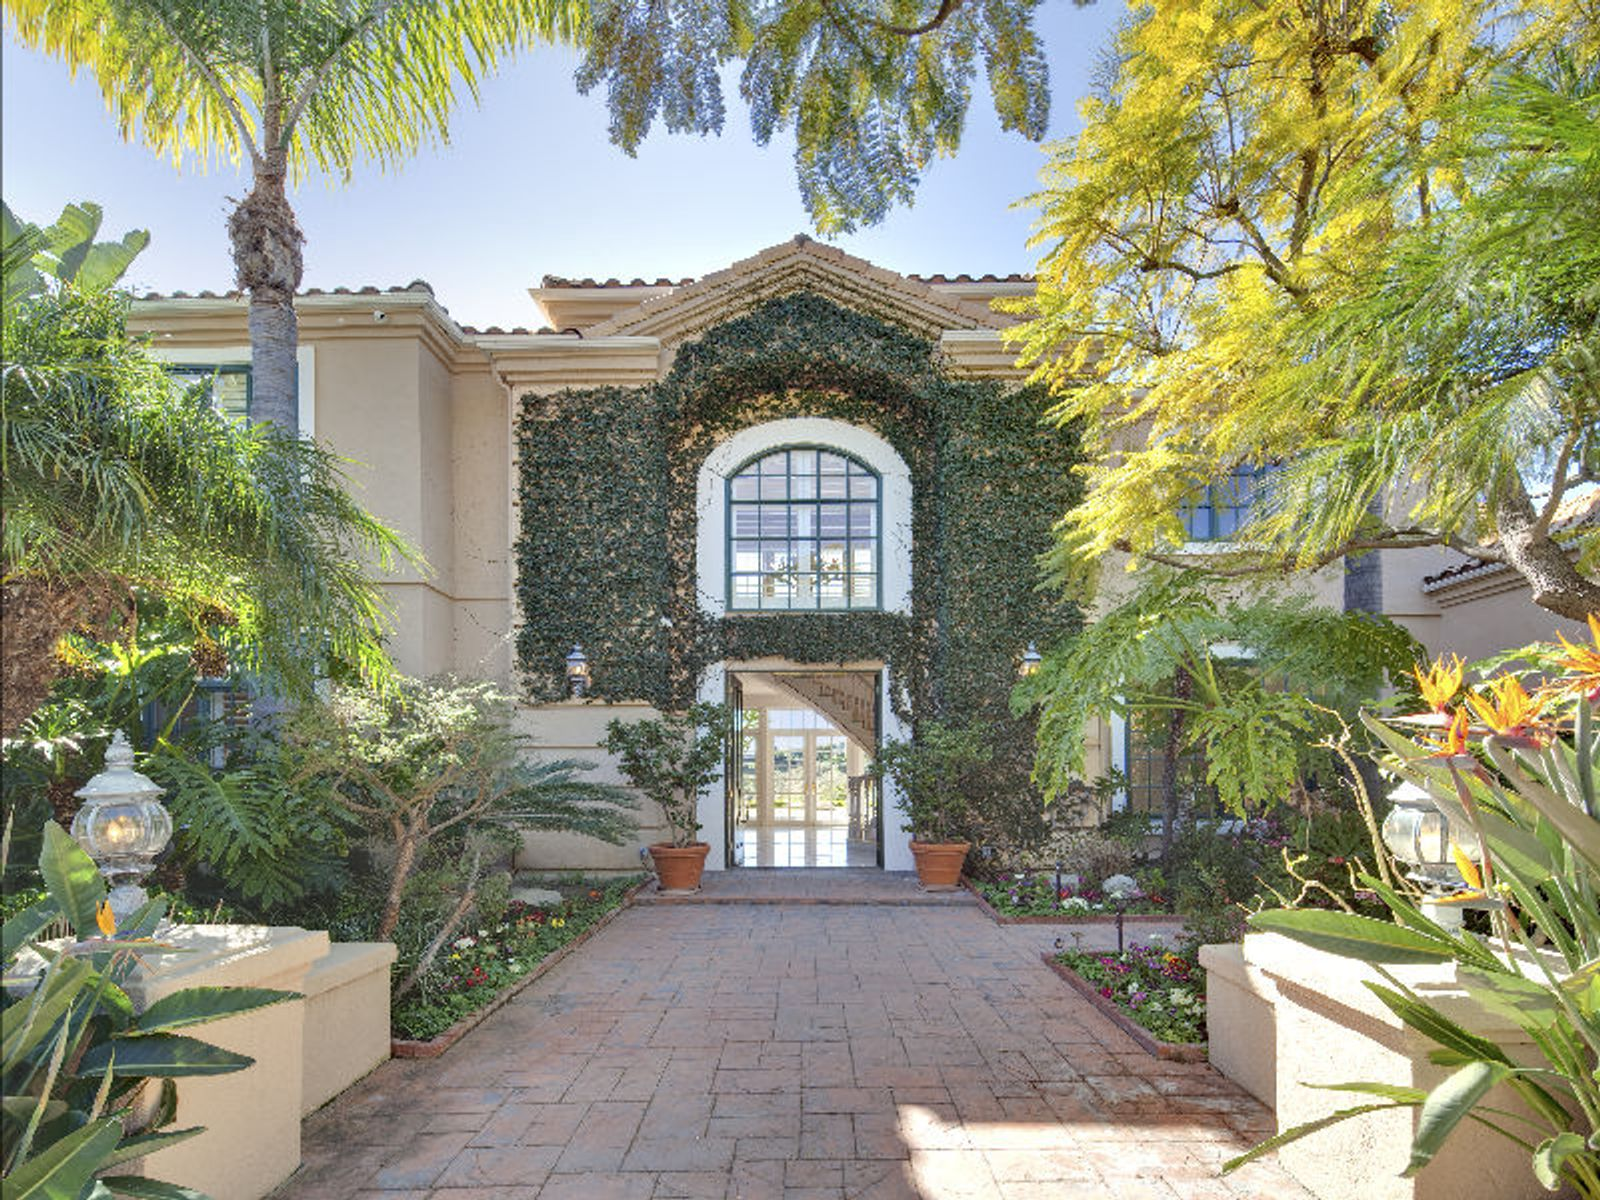 Exclusive Palisades Gated Community , Pacific Palisades CA Single Family Home - Los Angeles Real Estate